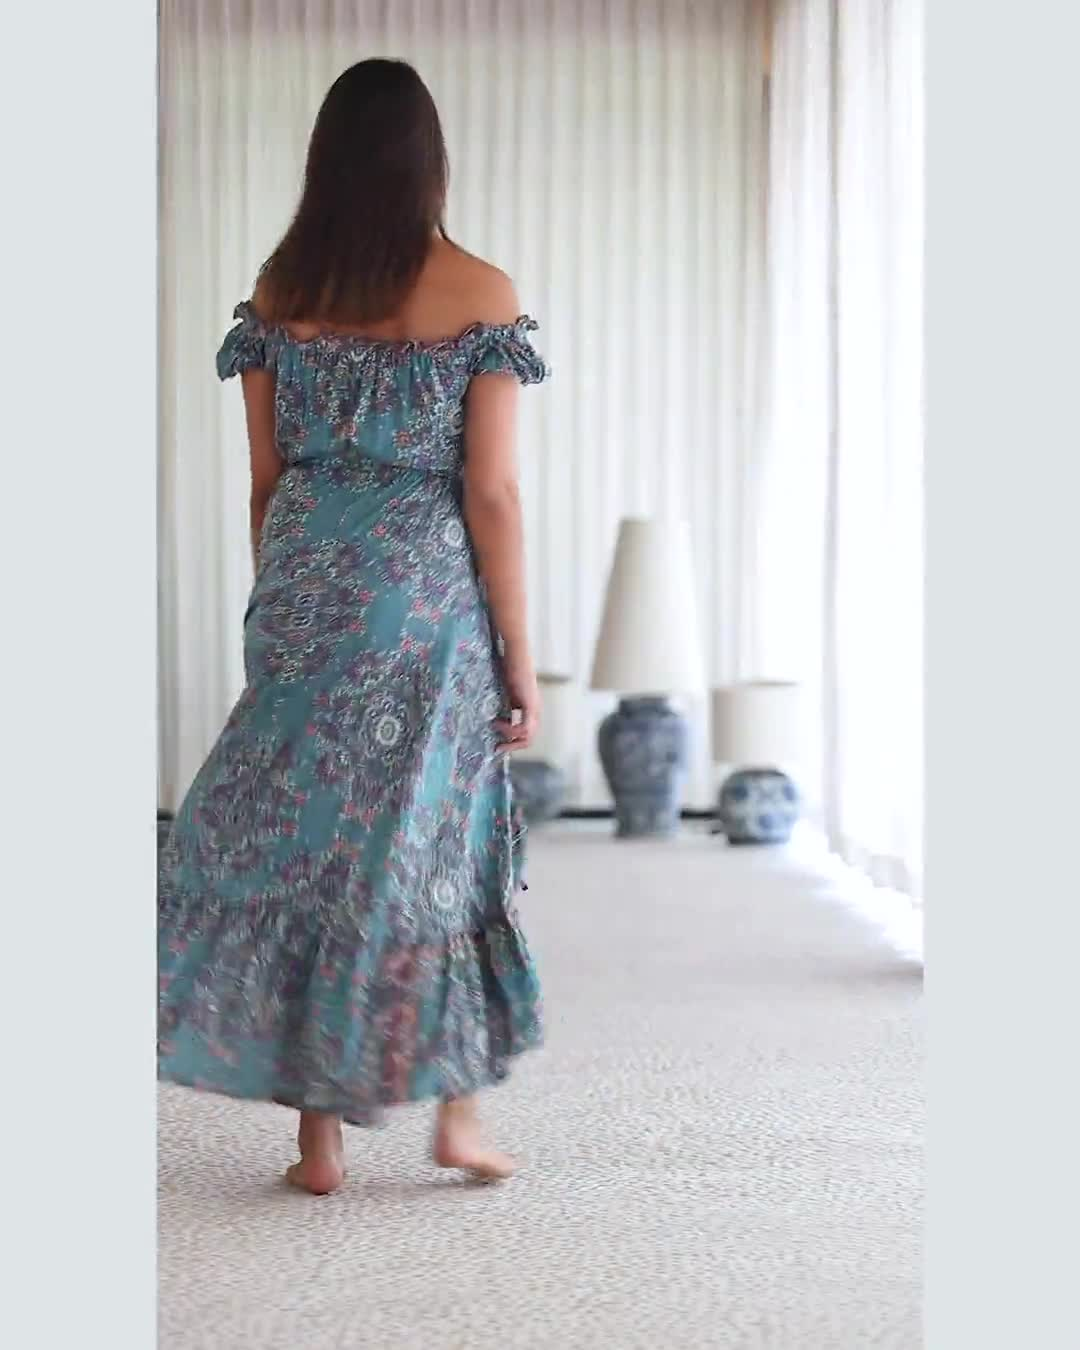 Off-Shoulder Teal Maxi Dress - Video